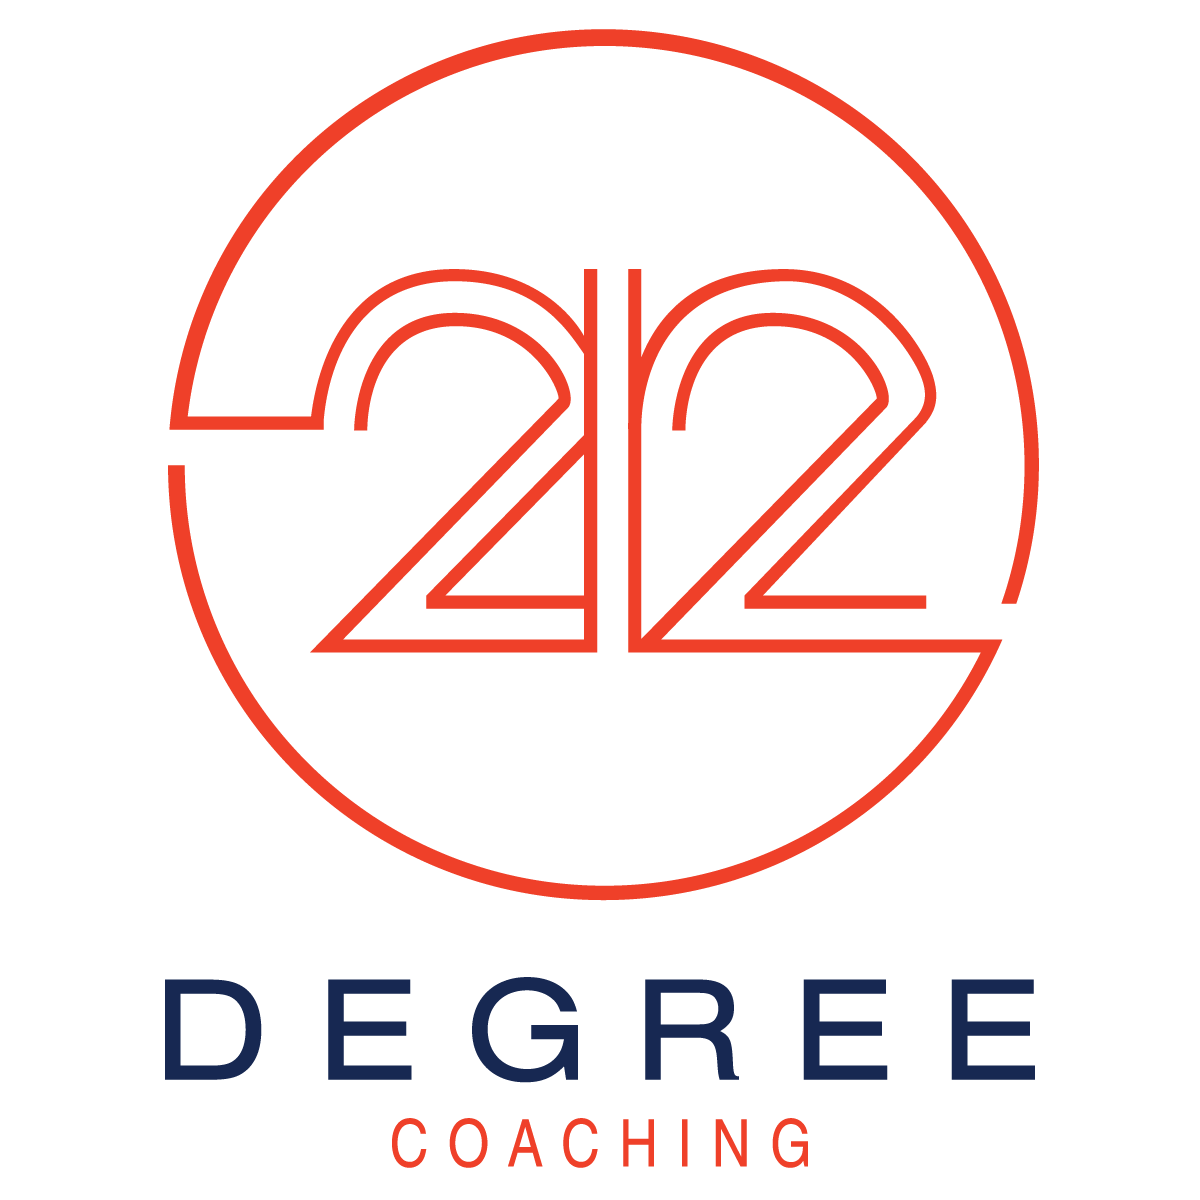 212 Degree Coaching